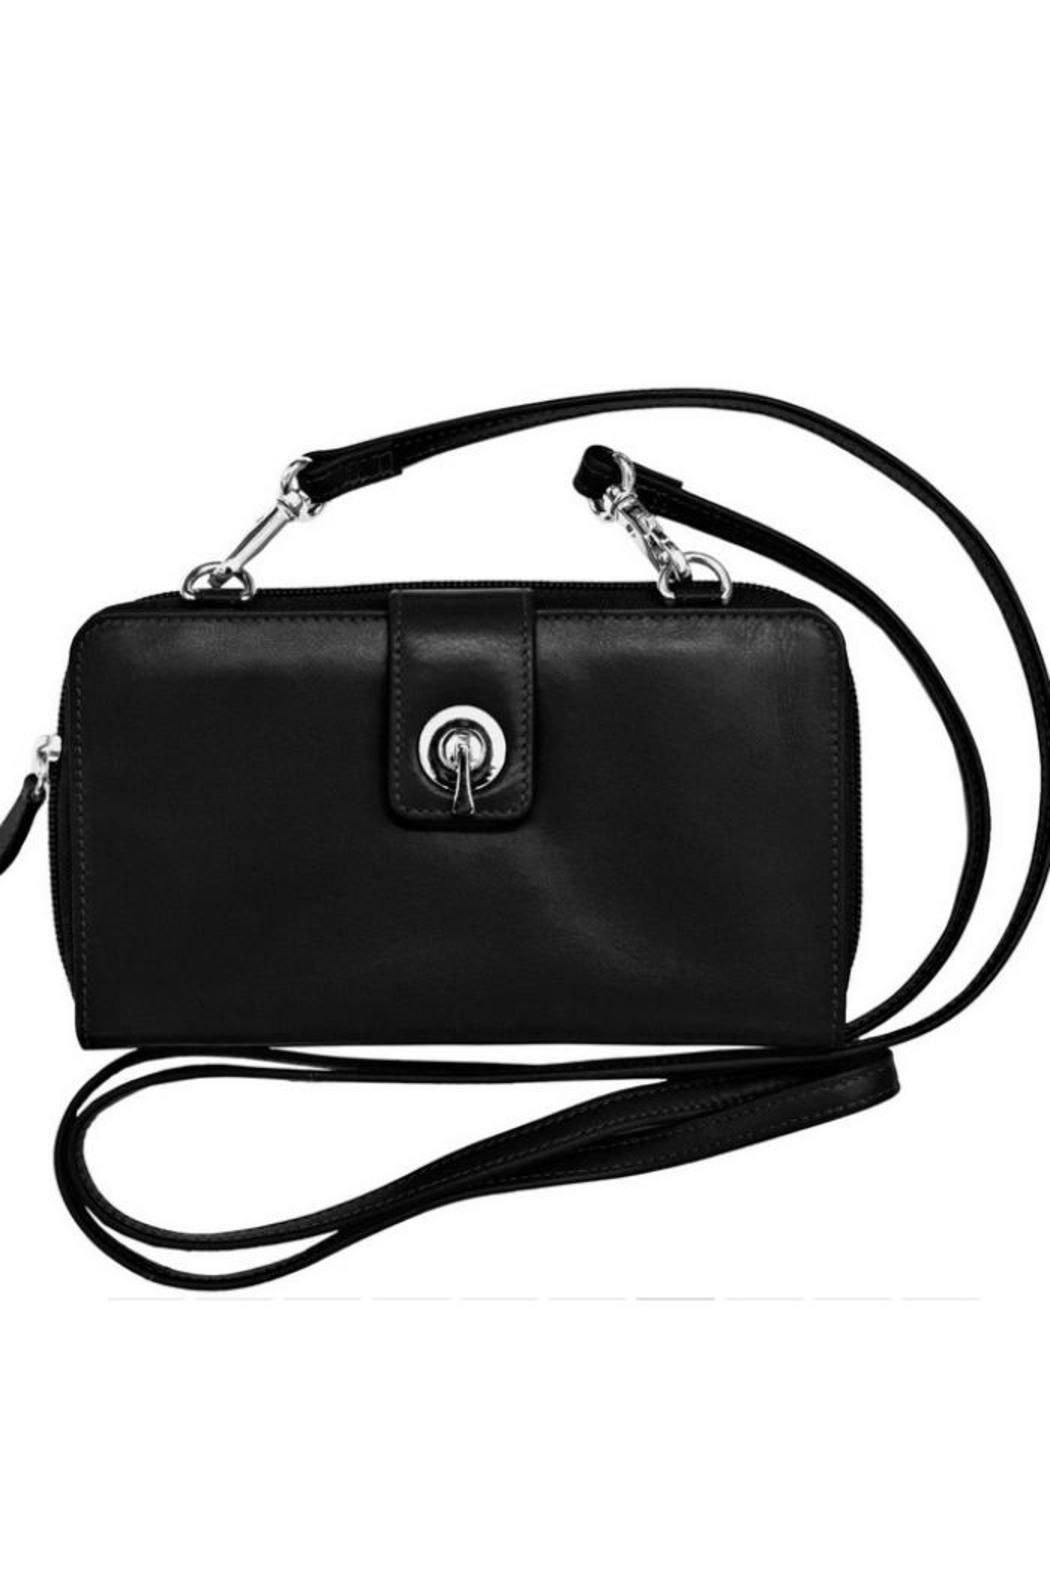 ili world Black Leather Crossbody - Main Image